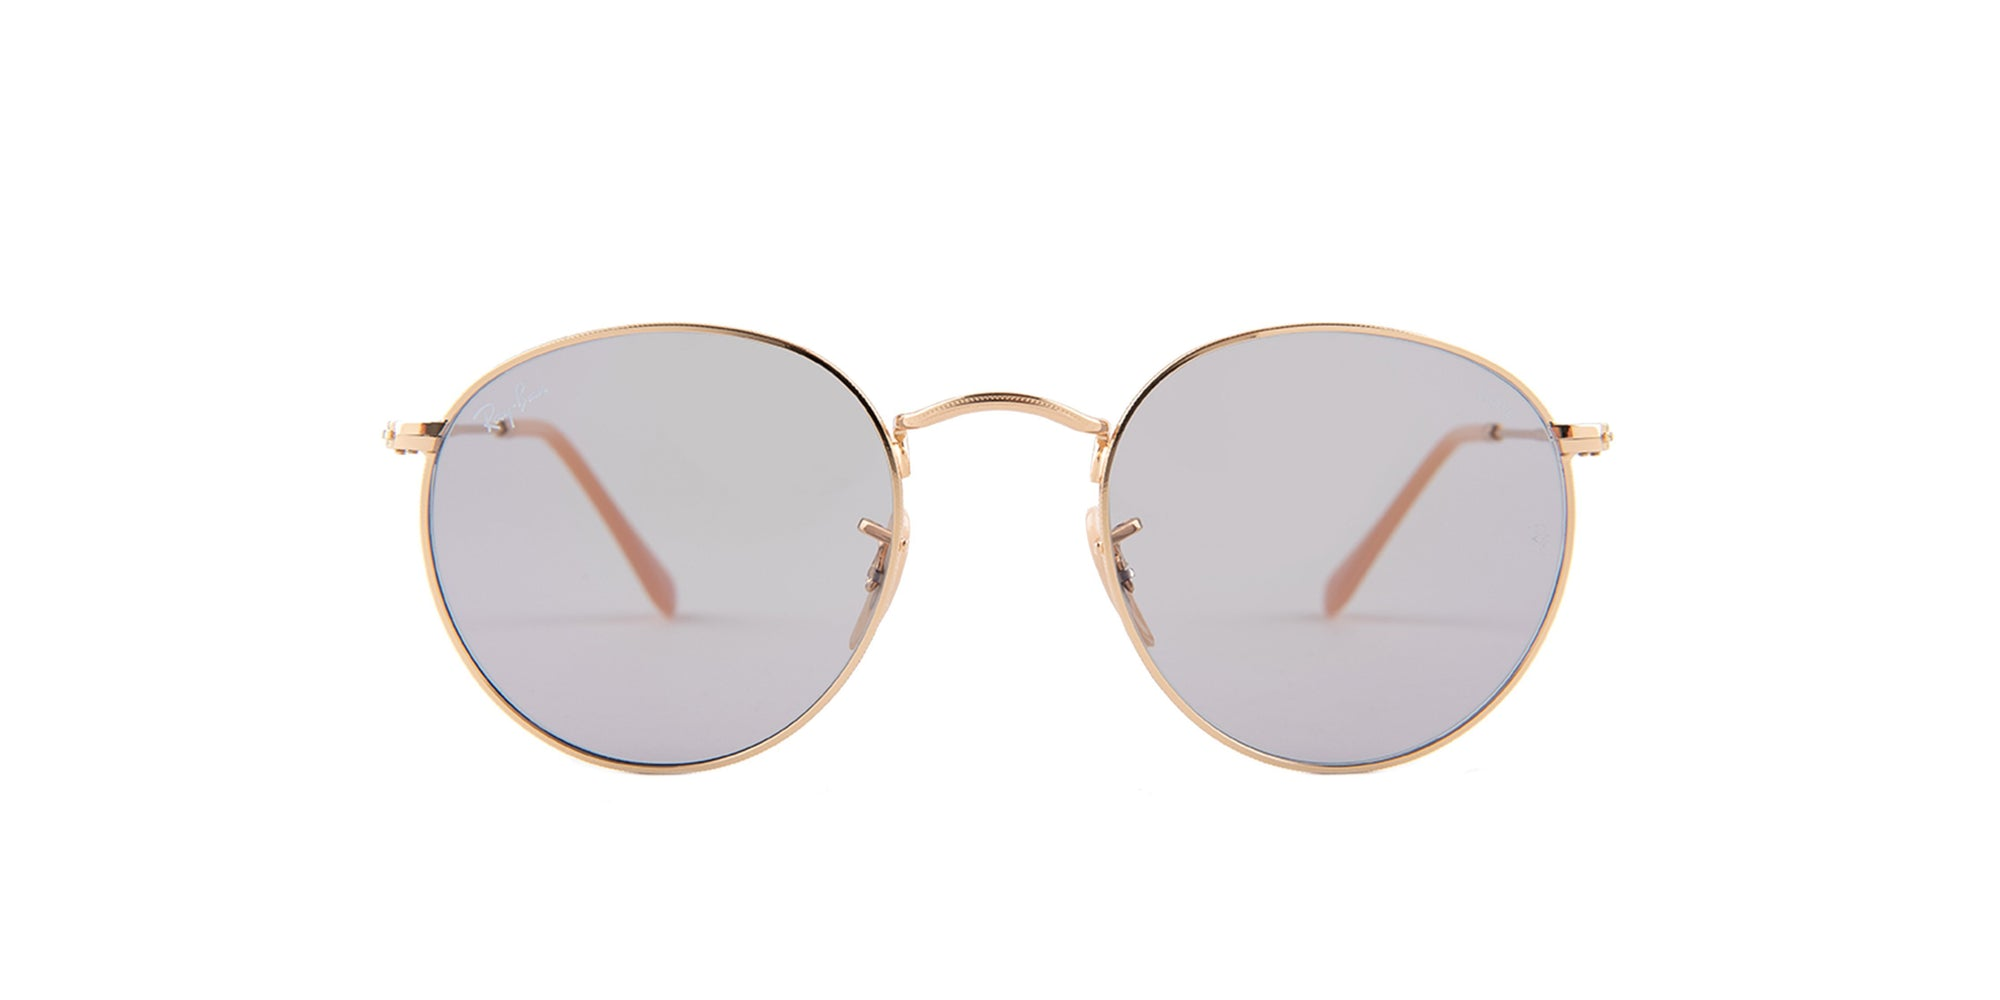 Ray Ban - Round Metal Gold Round Women Sunglasses - 50mm-Sunglasses-Designer Eyes